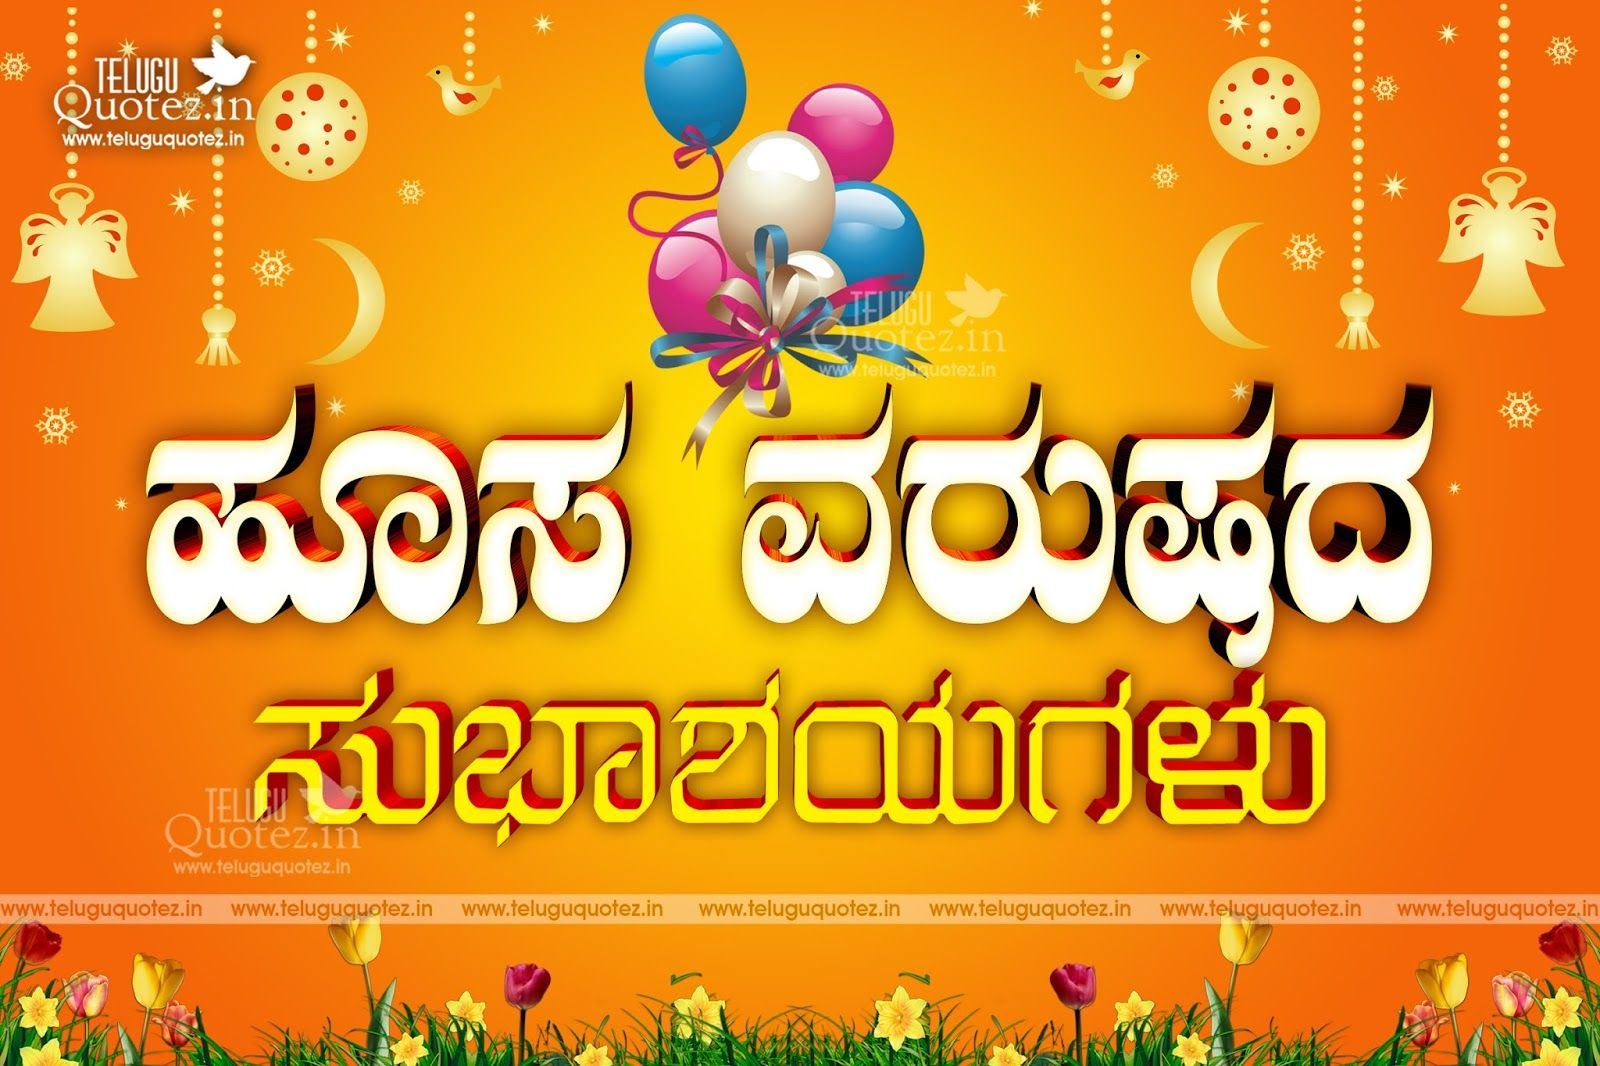 happy new year 2016 kannada greetings messages for friends new years greeting cards in kannada font new year greetings kannada quotes2016 happy new year